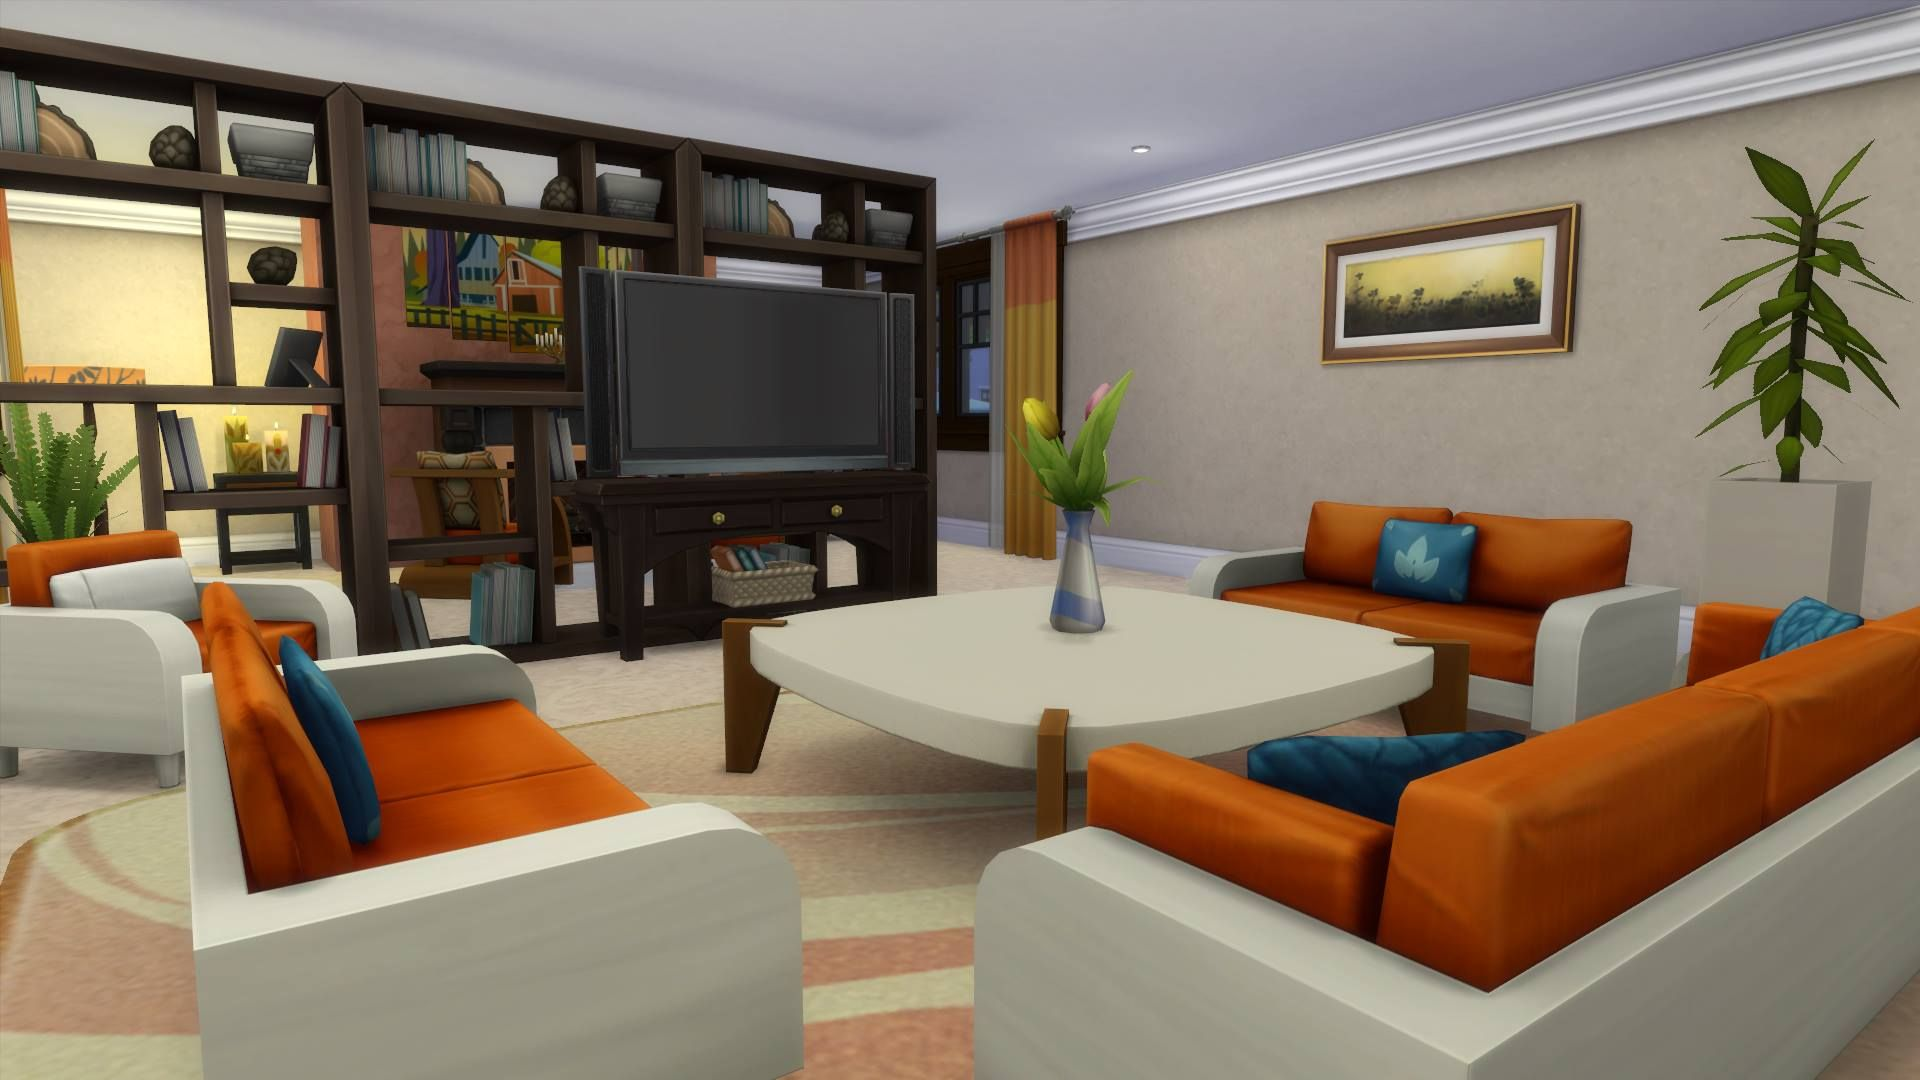 Sims 4 House Download Sims House Sims House Design Sims 4 House Design